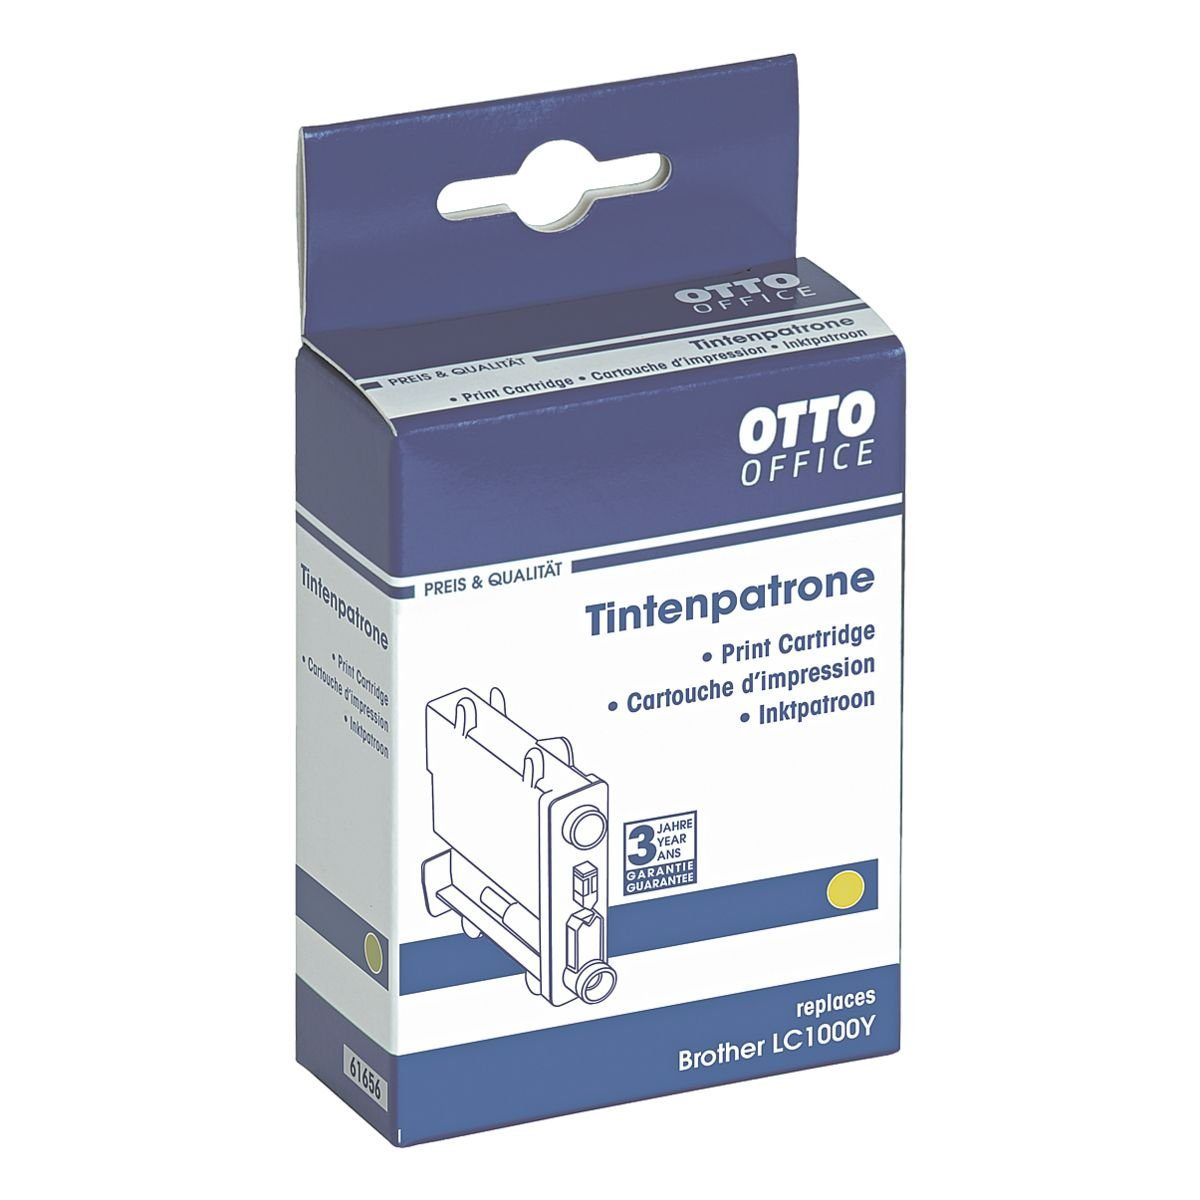 OTTO Office Standard Tintenpatrone ersetzt Brother »LC1000Y«